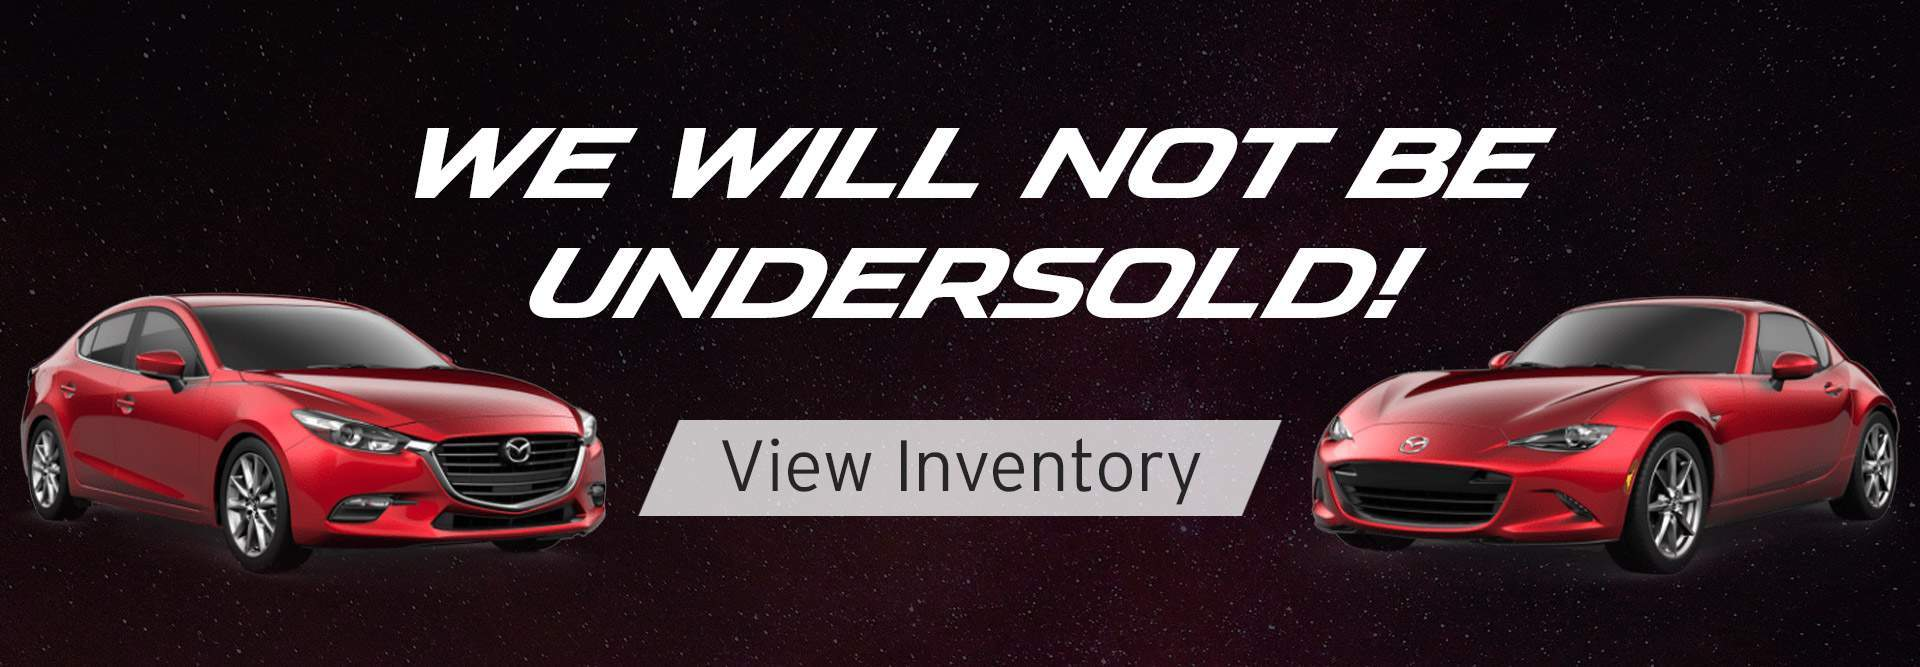 We will not be undersold